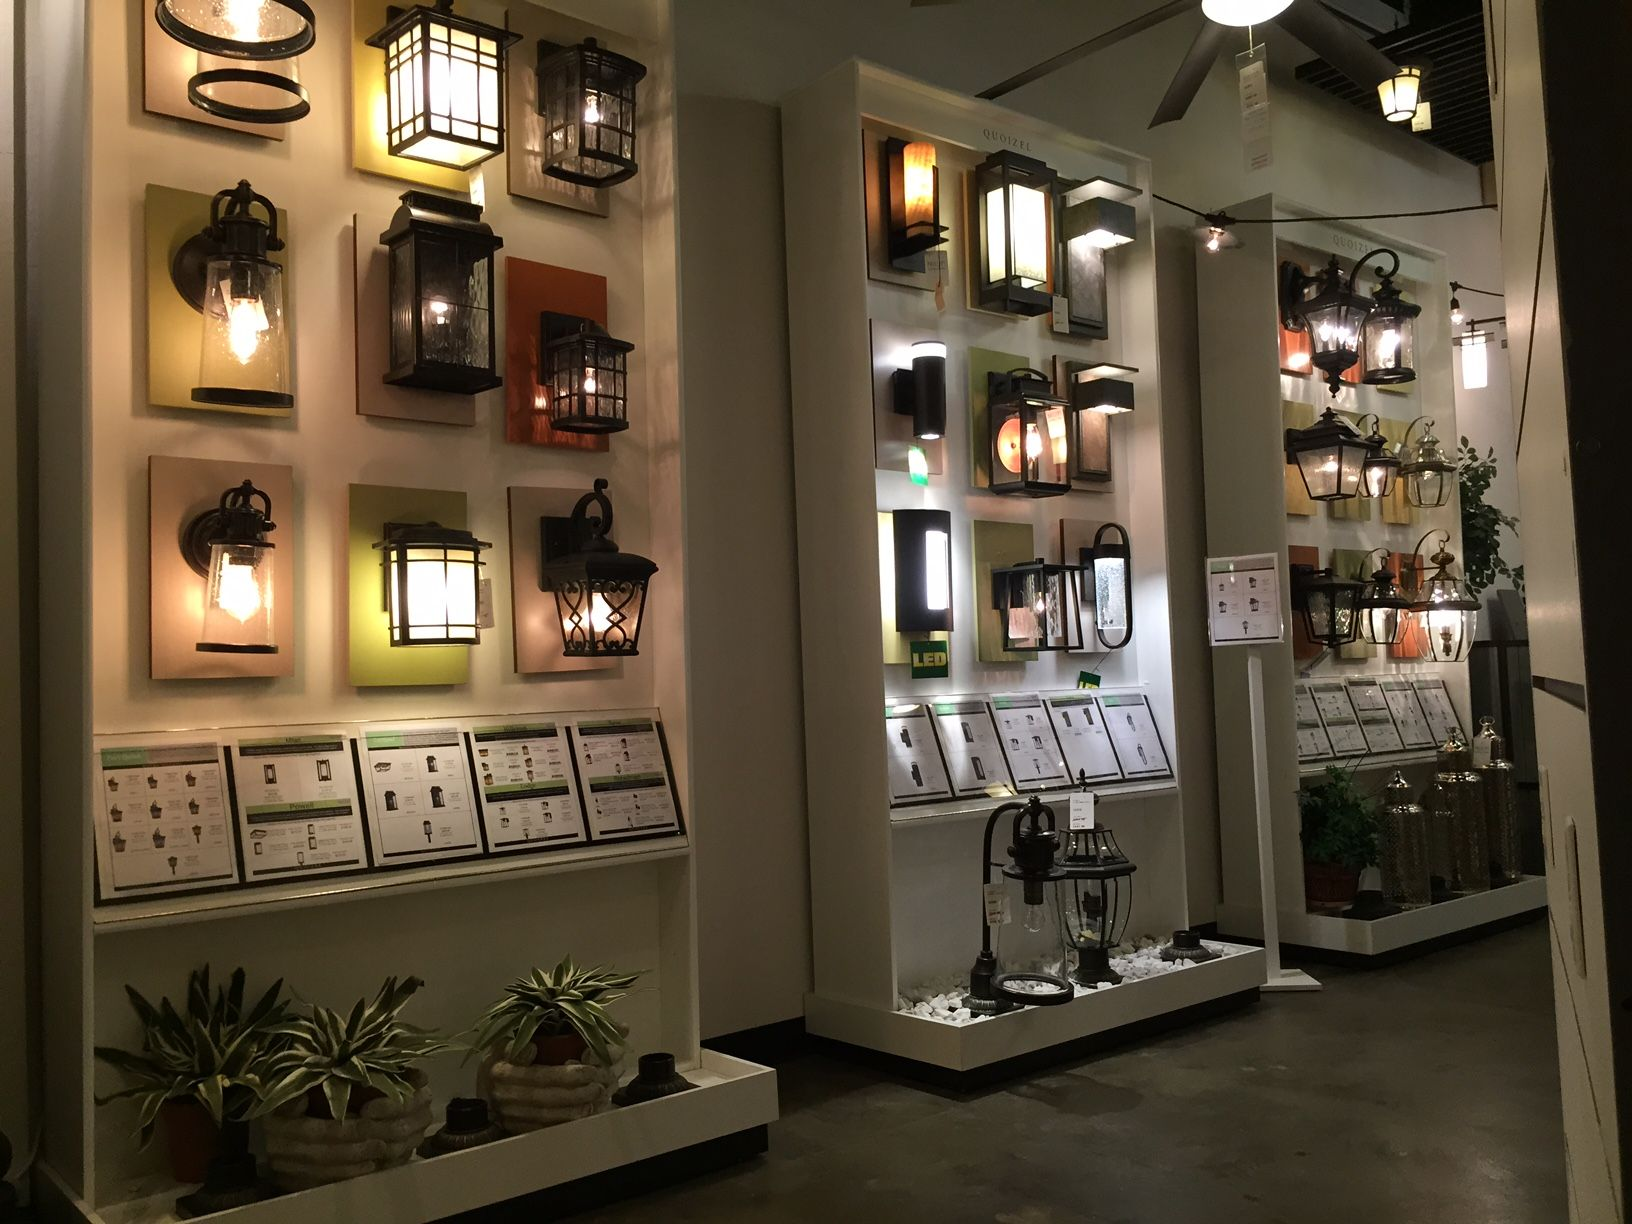 Lighting display google search lighting showroom lighting store visual merchandising displays future